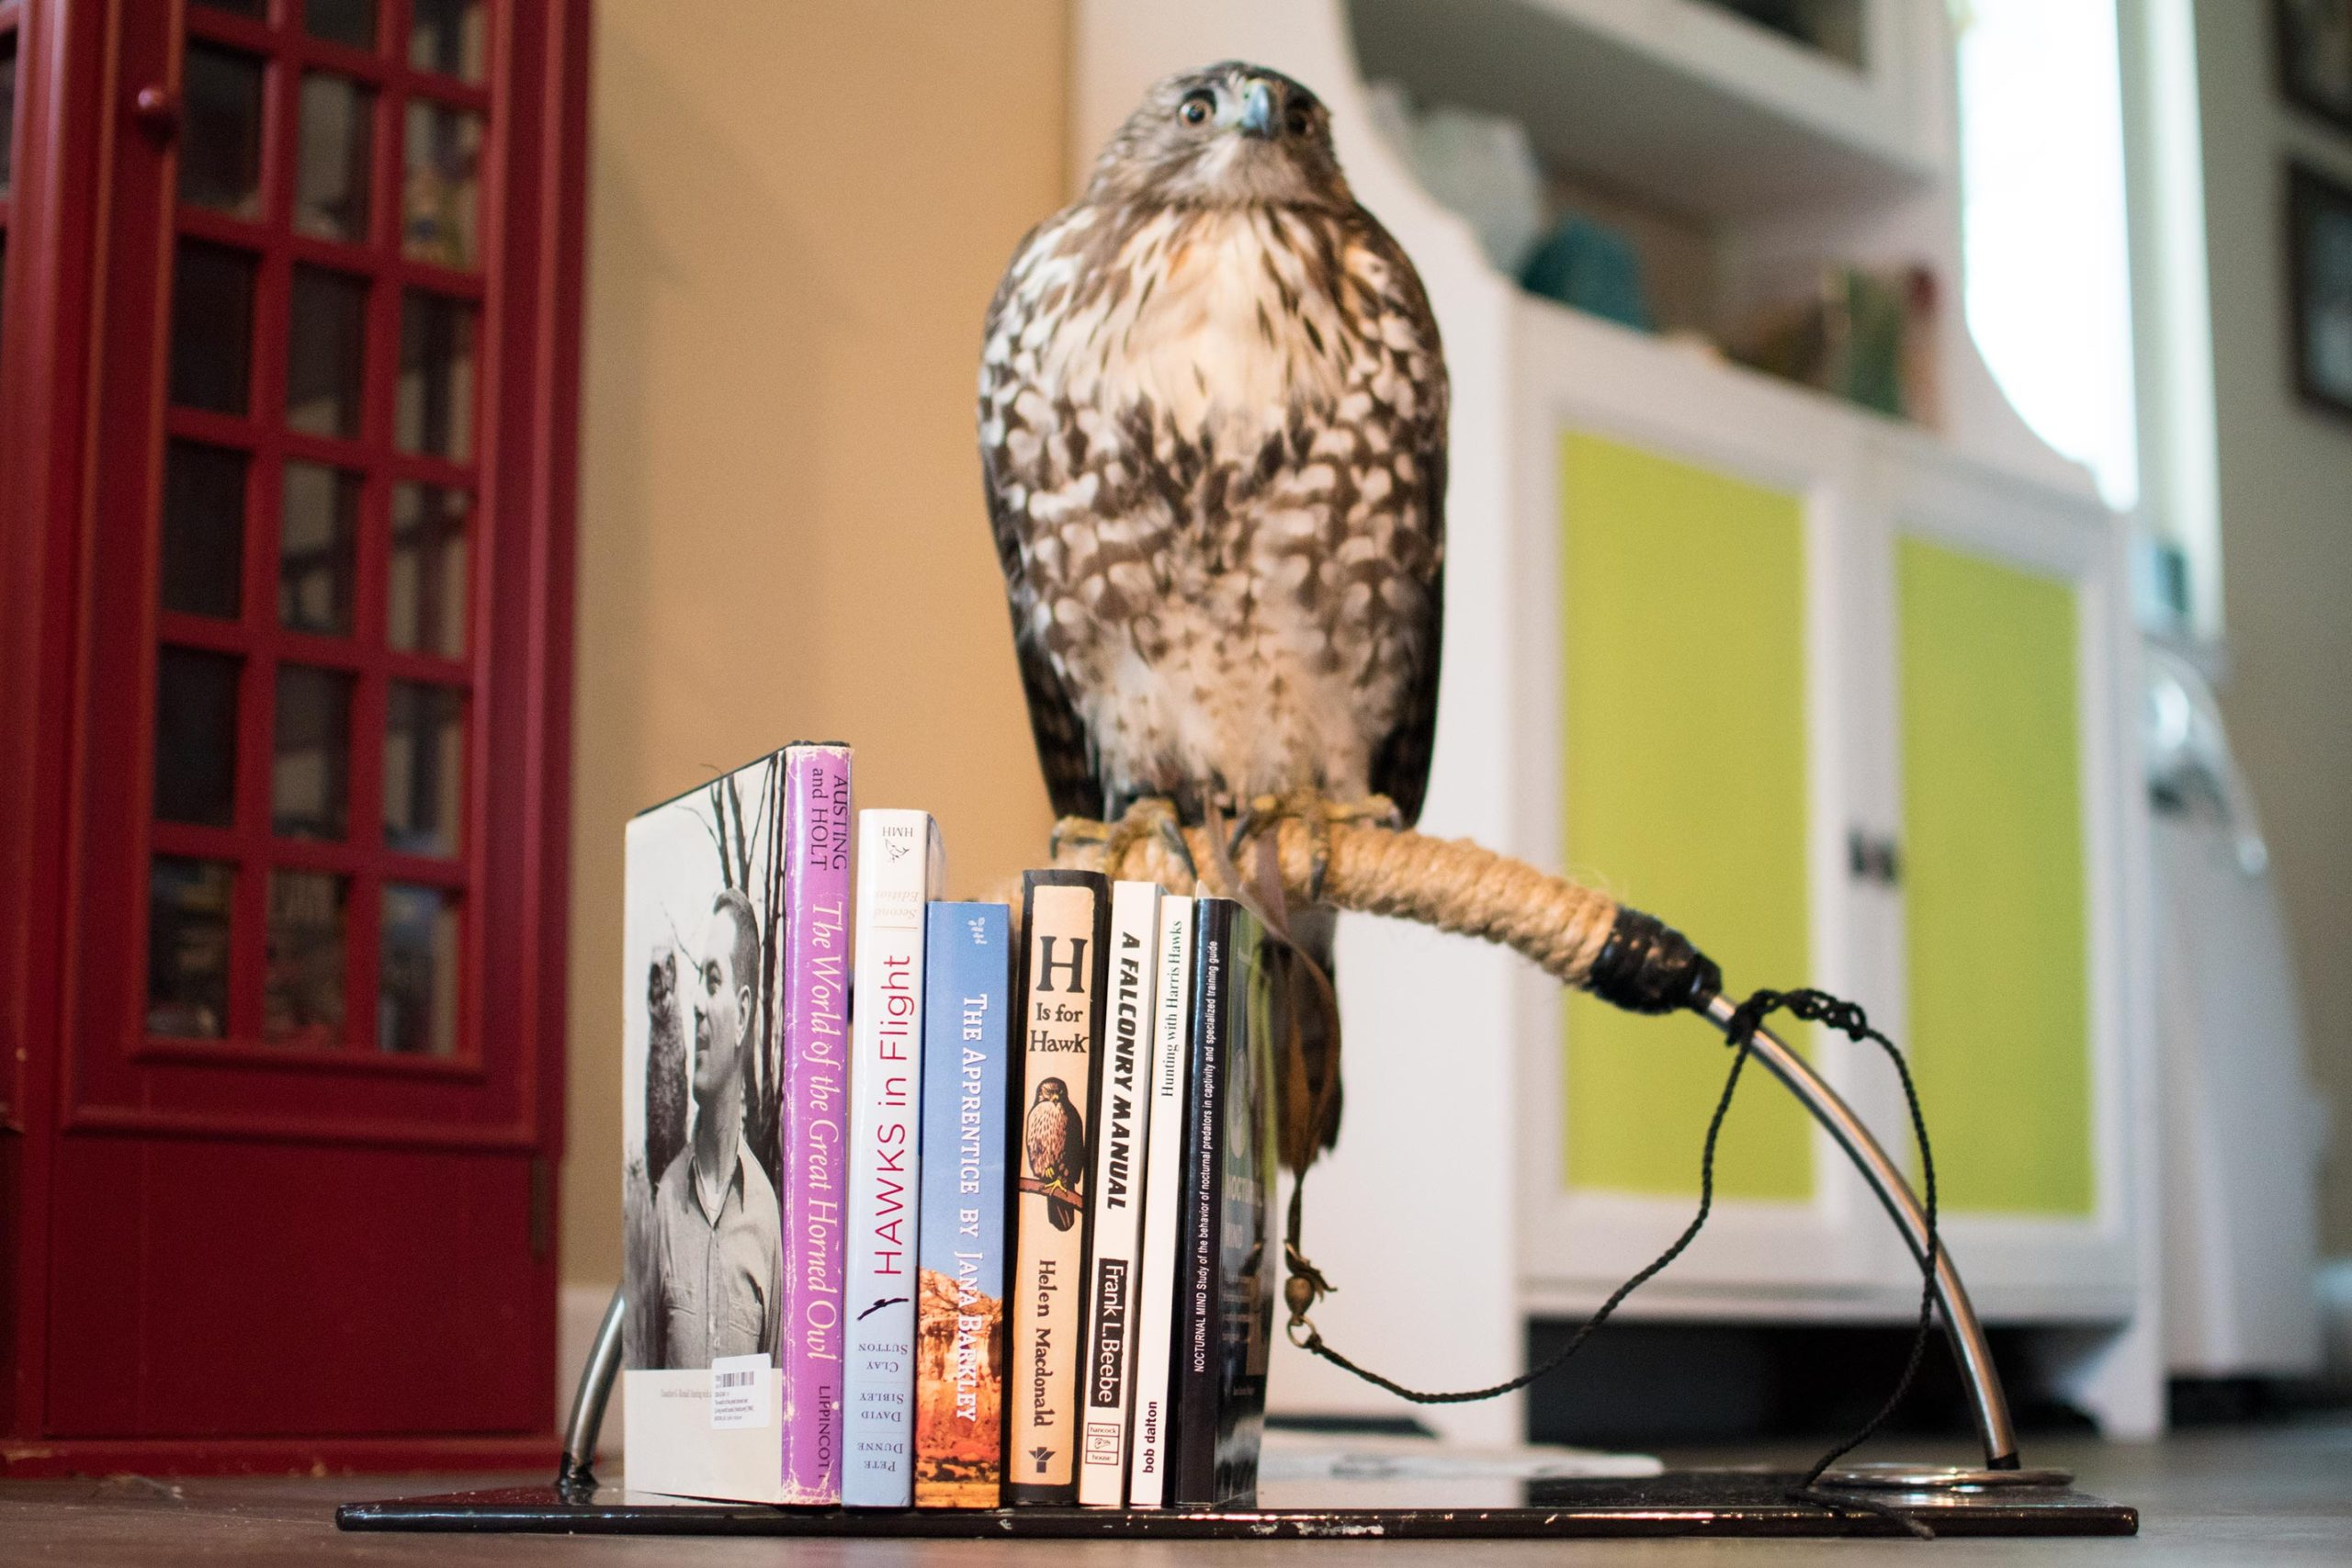 Toast the Red Tailed Hawk perched next to falconry books